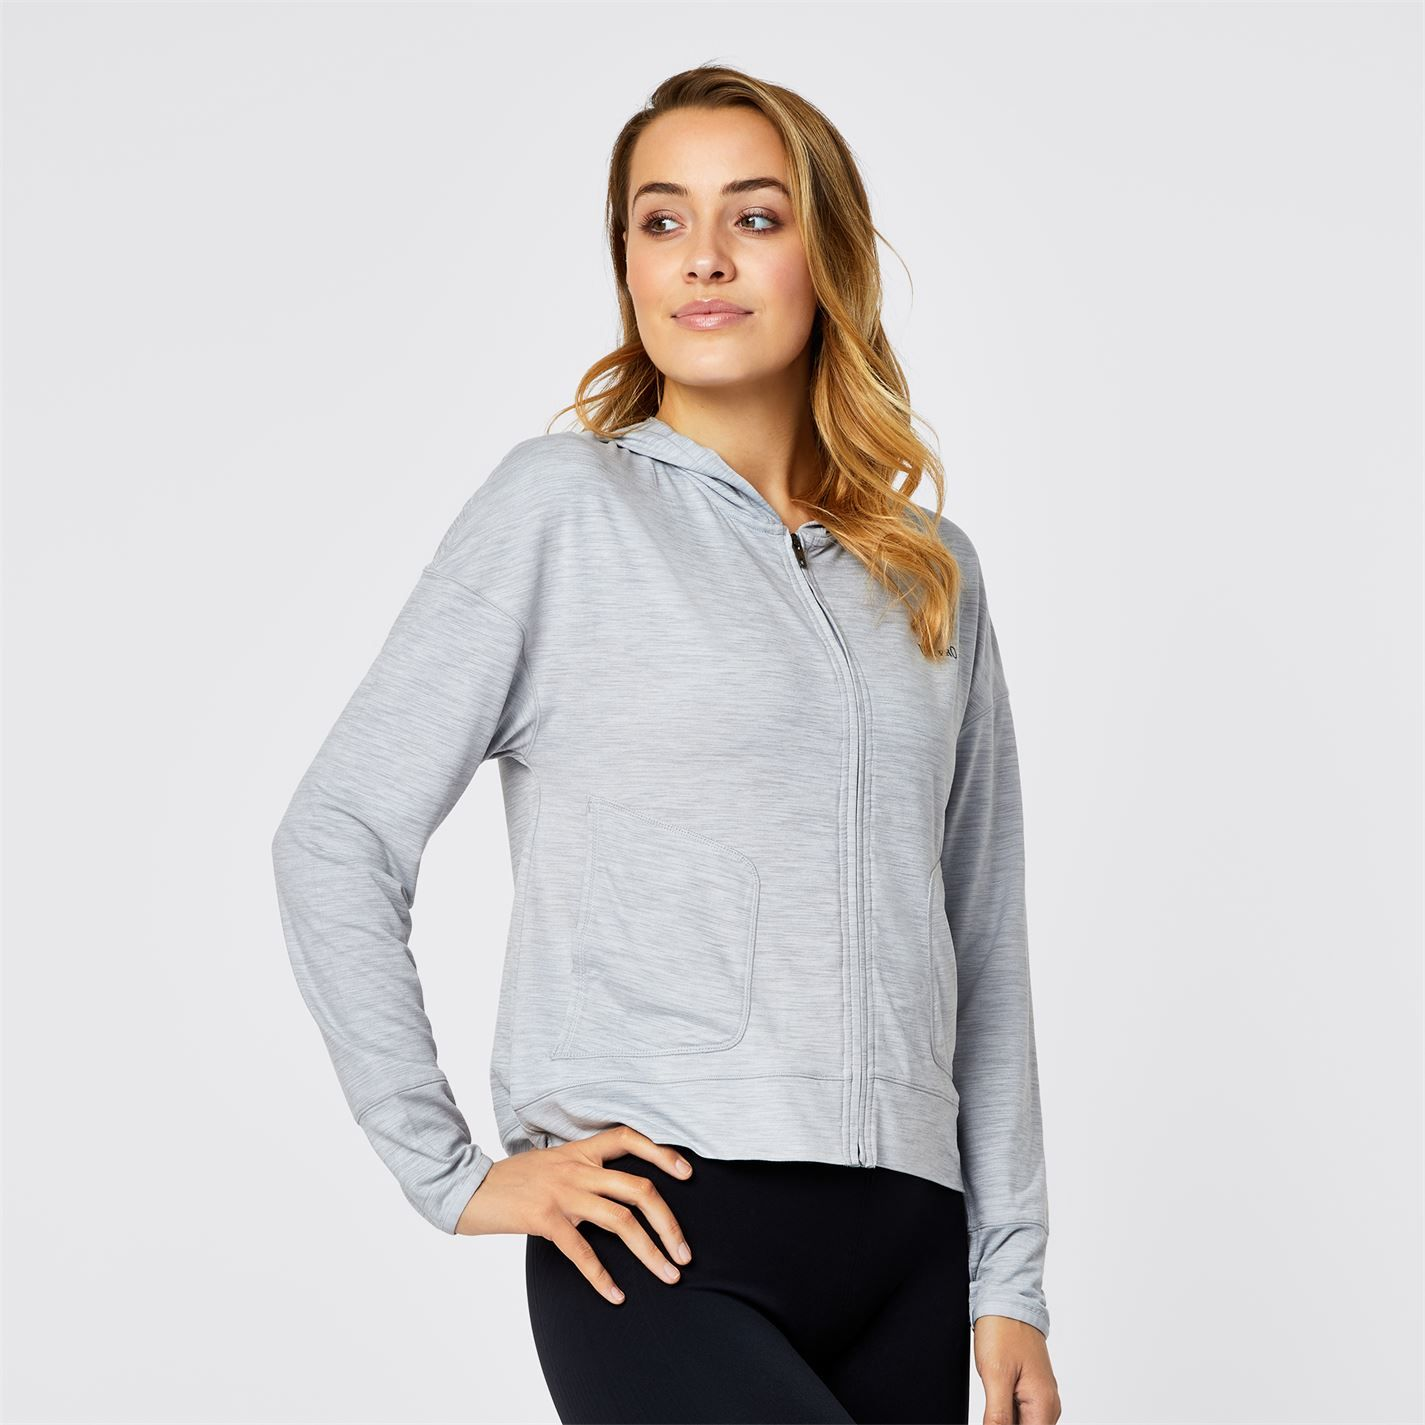 Usa Pro Womens Zip Front Lightweight Long Sleeve Slouch Hoodie Sports Top